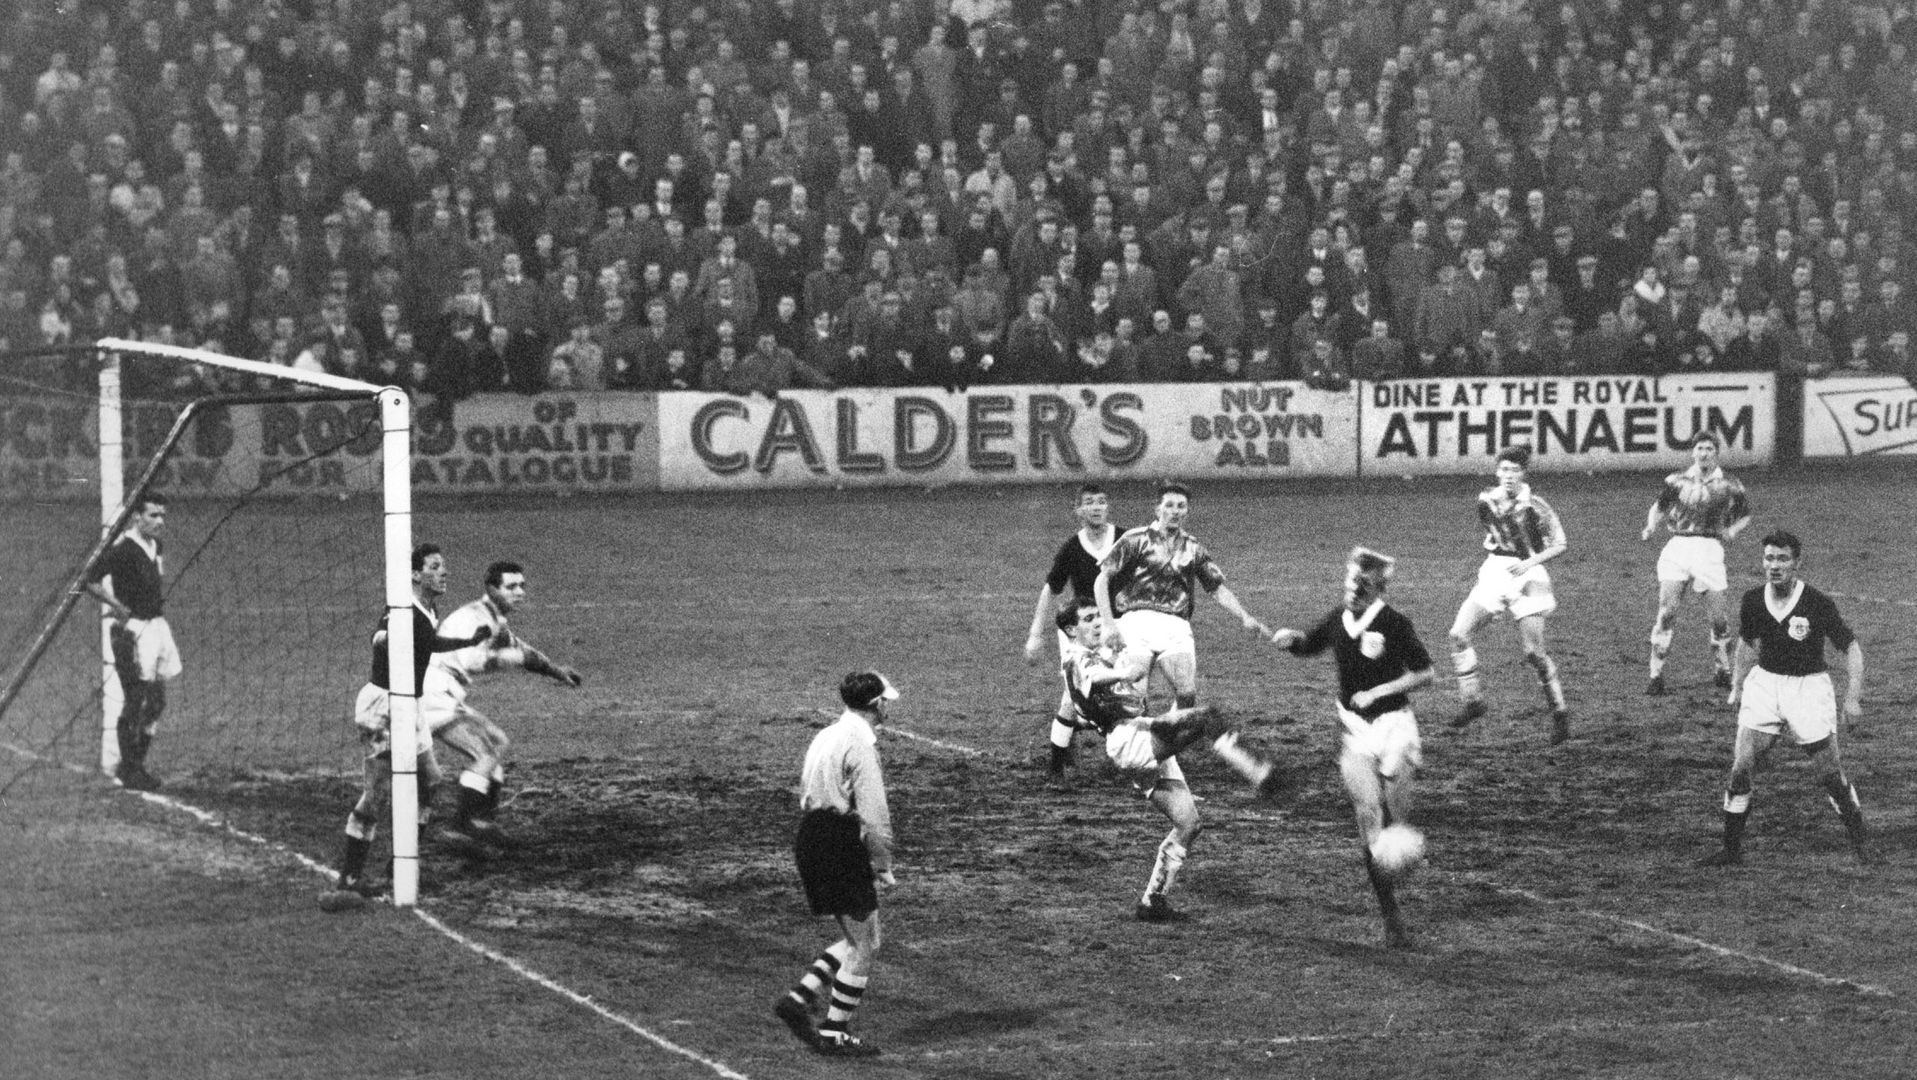 Action from Aberdeen v Dundee at Pittodrie in 1961